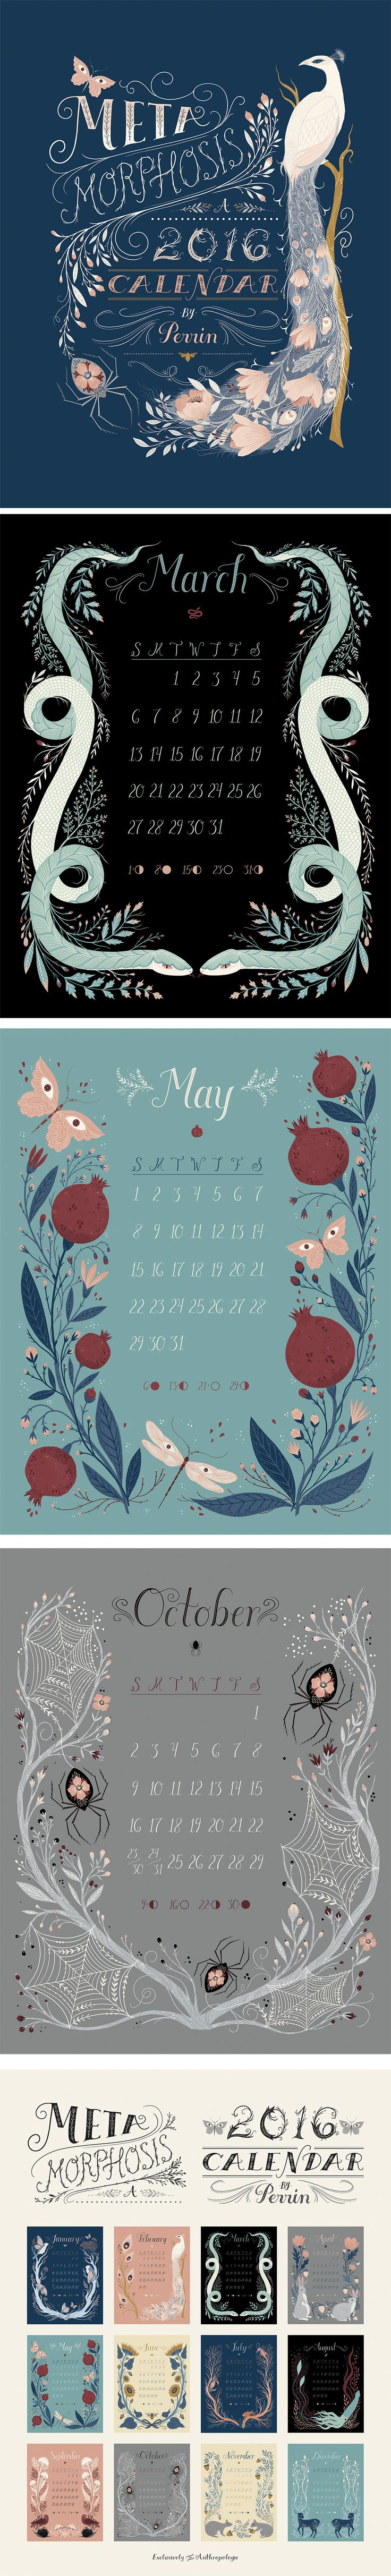 Very delighted to share the 2016 calendar I designed, hand lettered, and illustrated for Anthropologie! The theme and title is Metamorphosis, and the calendar features unique morphing flora and fauna to take you through the seasons. Digital illustration ©Perrin 2014 Check it out here: http://www.anthropologie.com/anthro/product/36146199.jsp#/